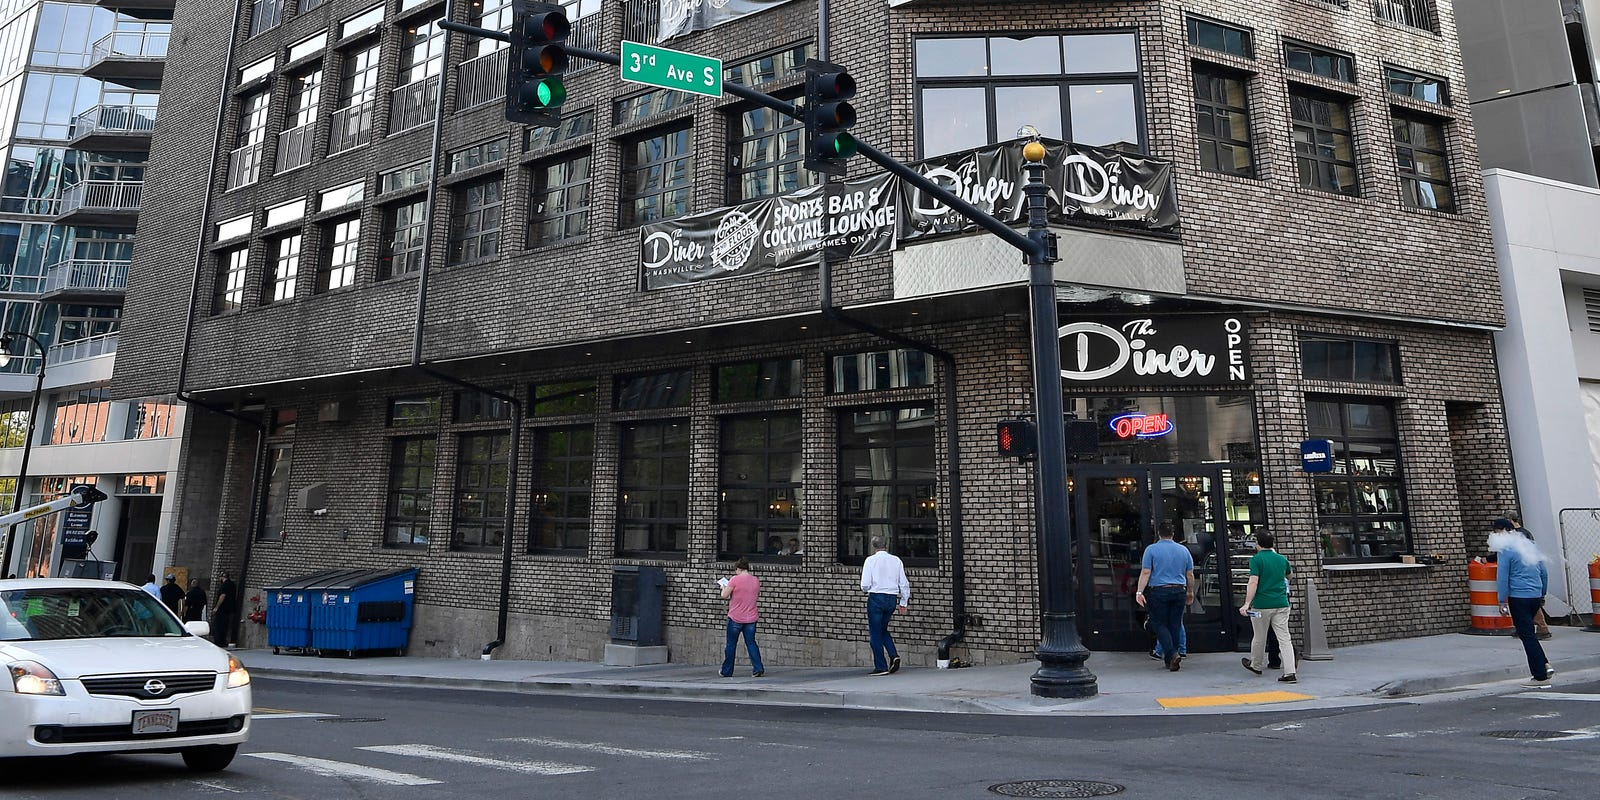 Two Nashville bars now selling alcohol 23 hours a day